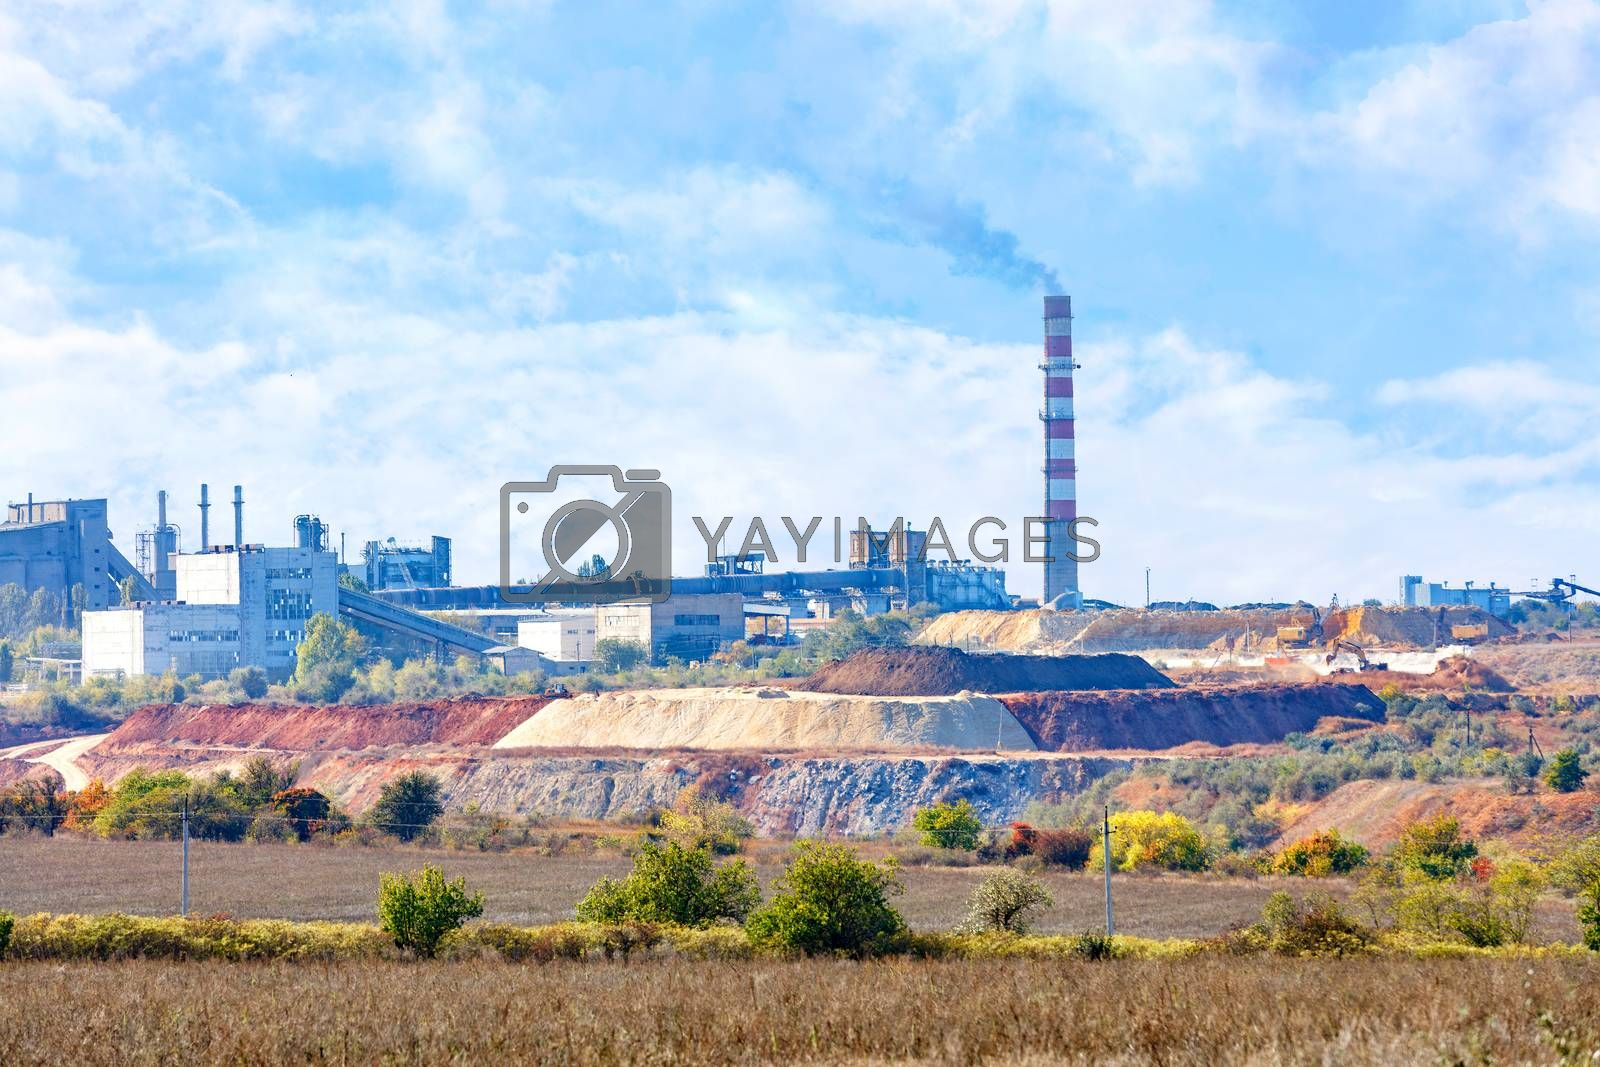 Sand and clay quarry, cement production complex on the horizon with a tall chimney against a blue cloudy sky, copy space.